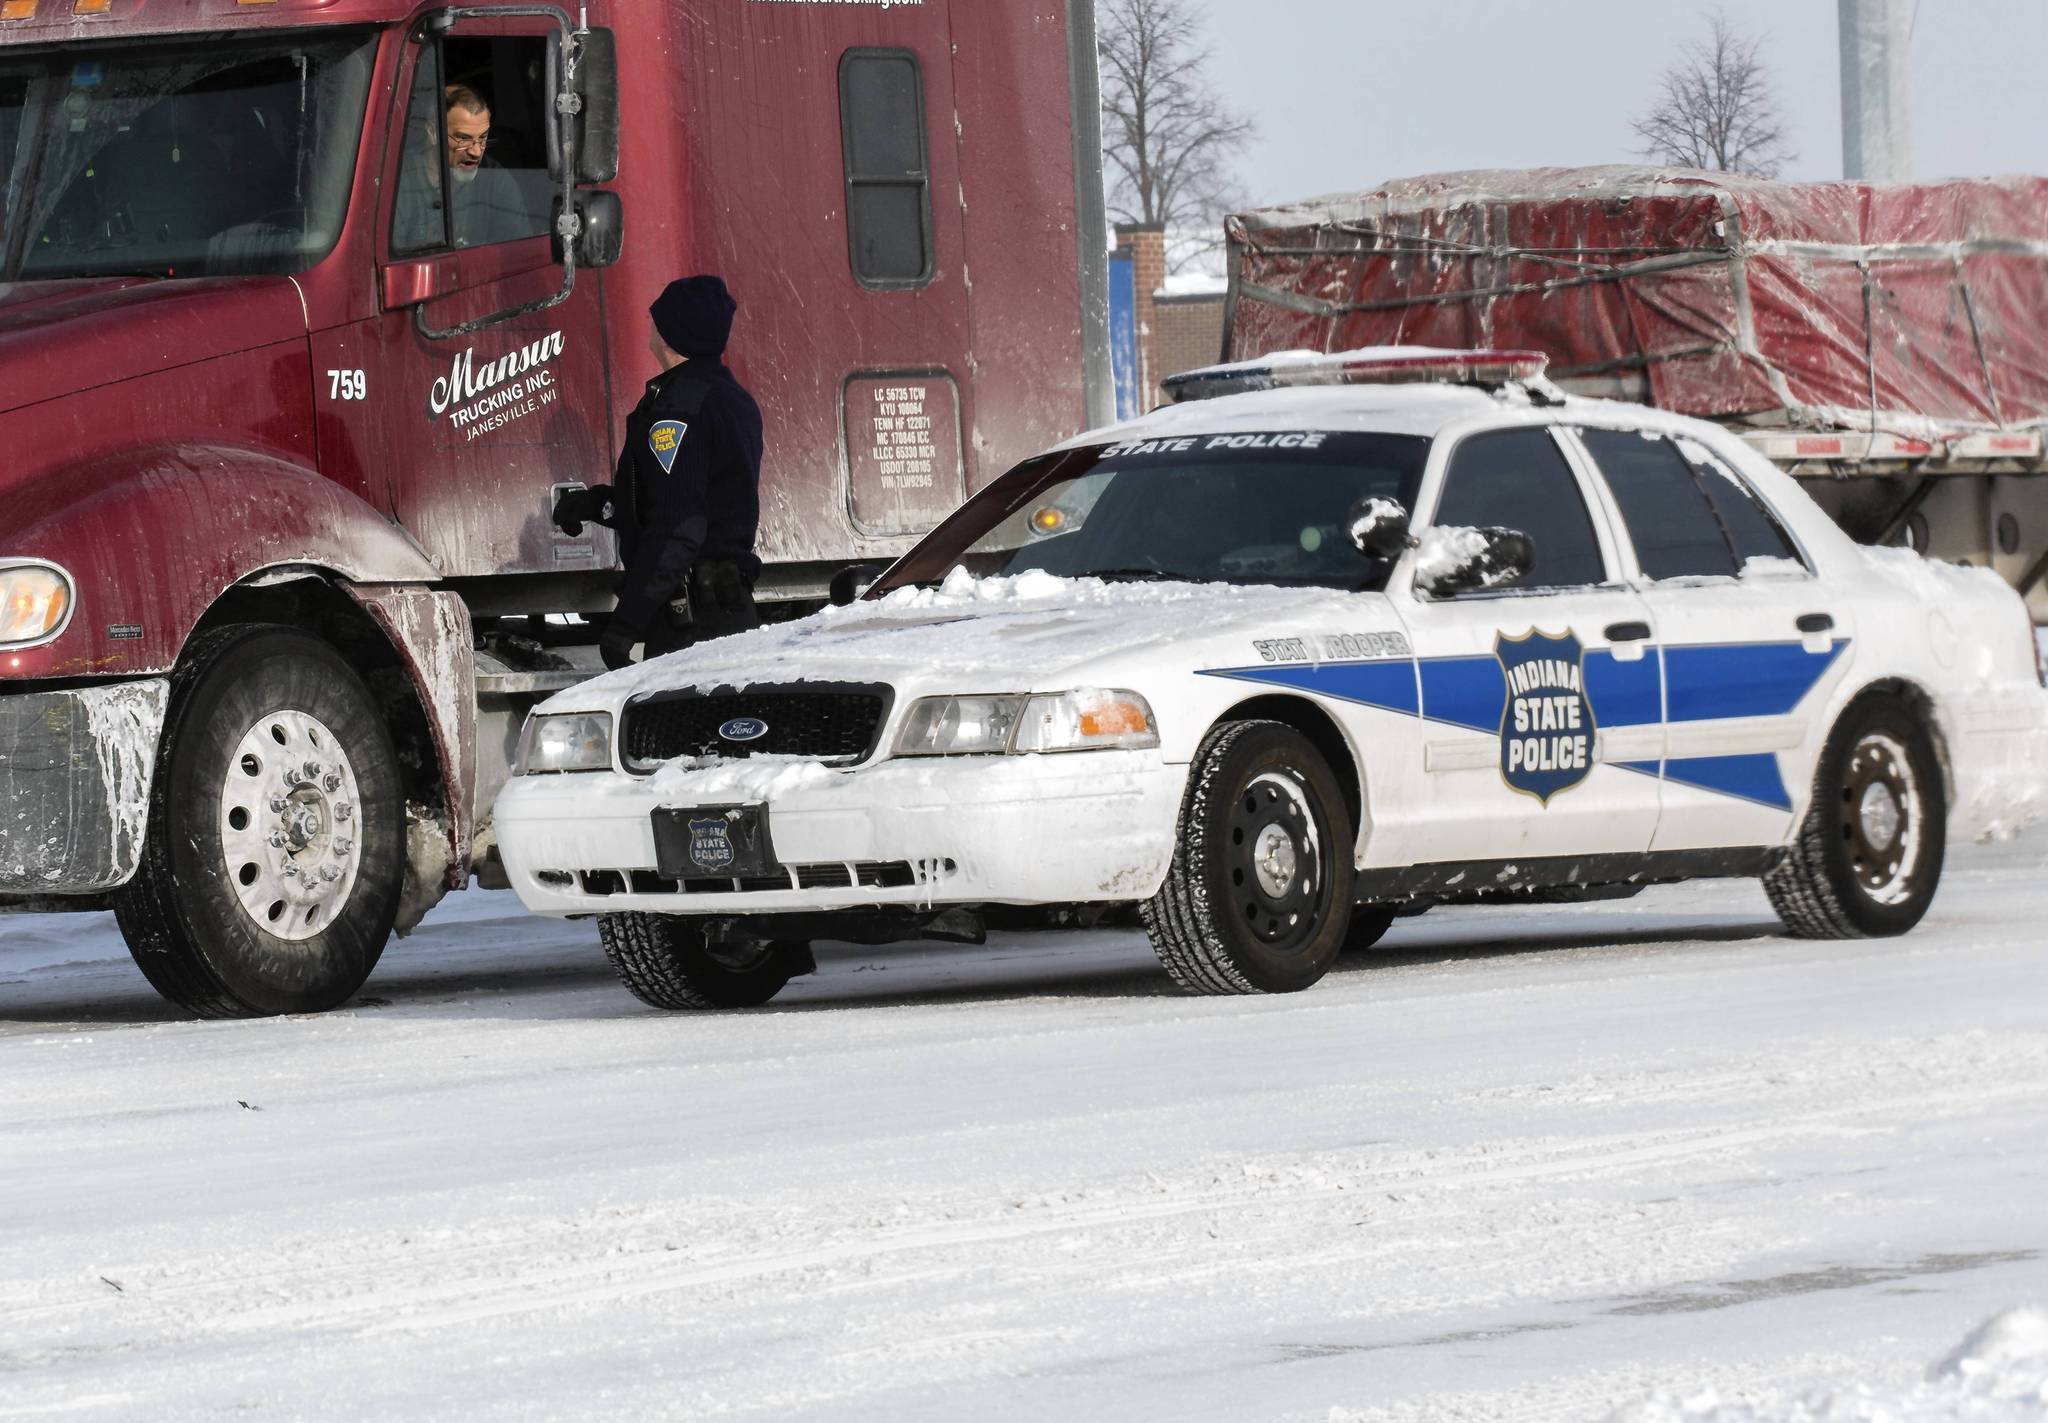 An Indiana state trooper advises a truck driver to move on after the opening of I-65 at U.S. 30 in Merrillville, Ind., on Monday.